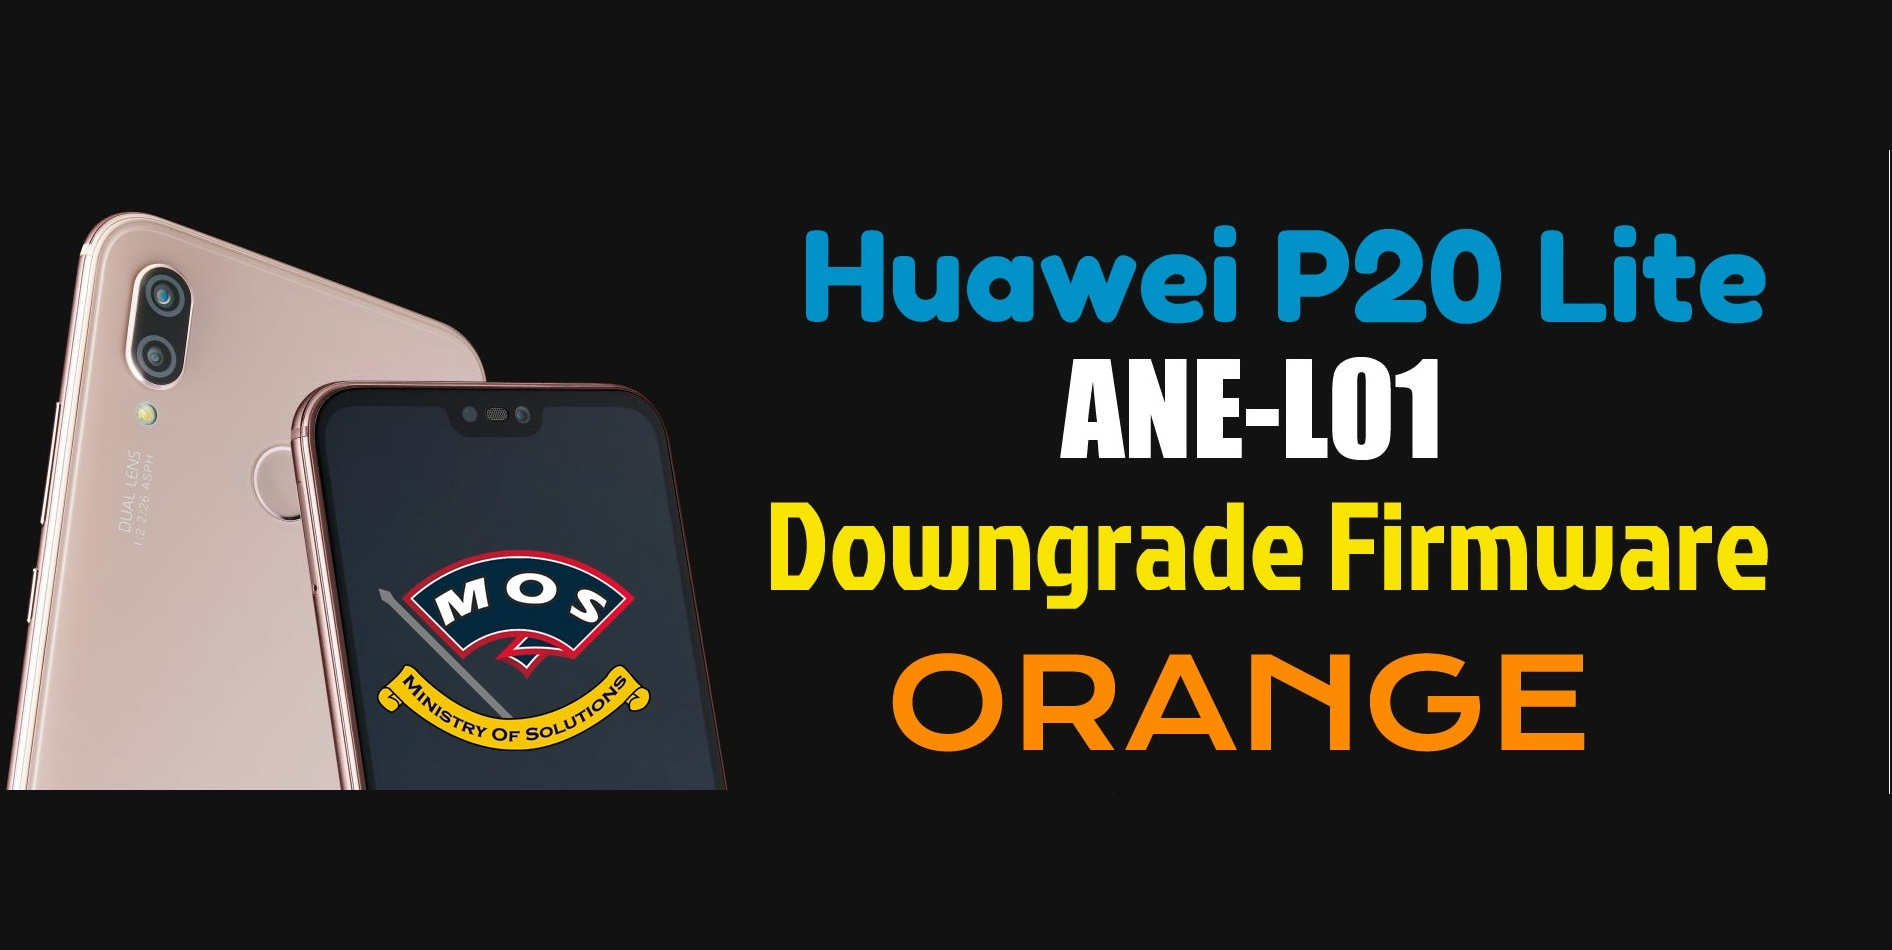 Huawei P20 Lite ANE-L01 Downgrade Firmware (Orange) - Ministry Of